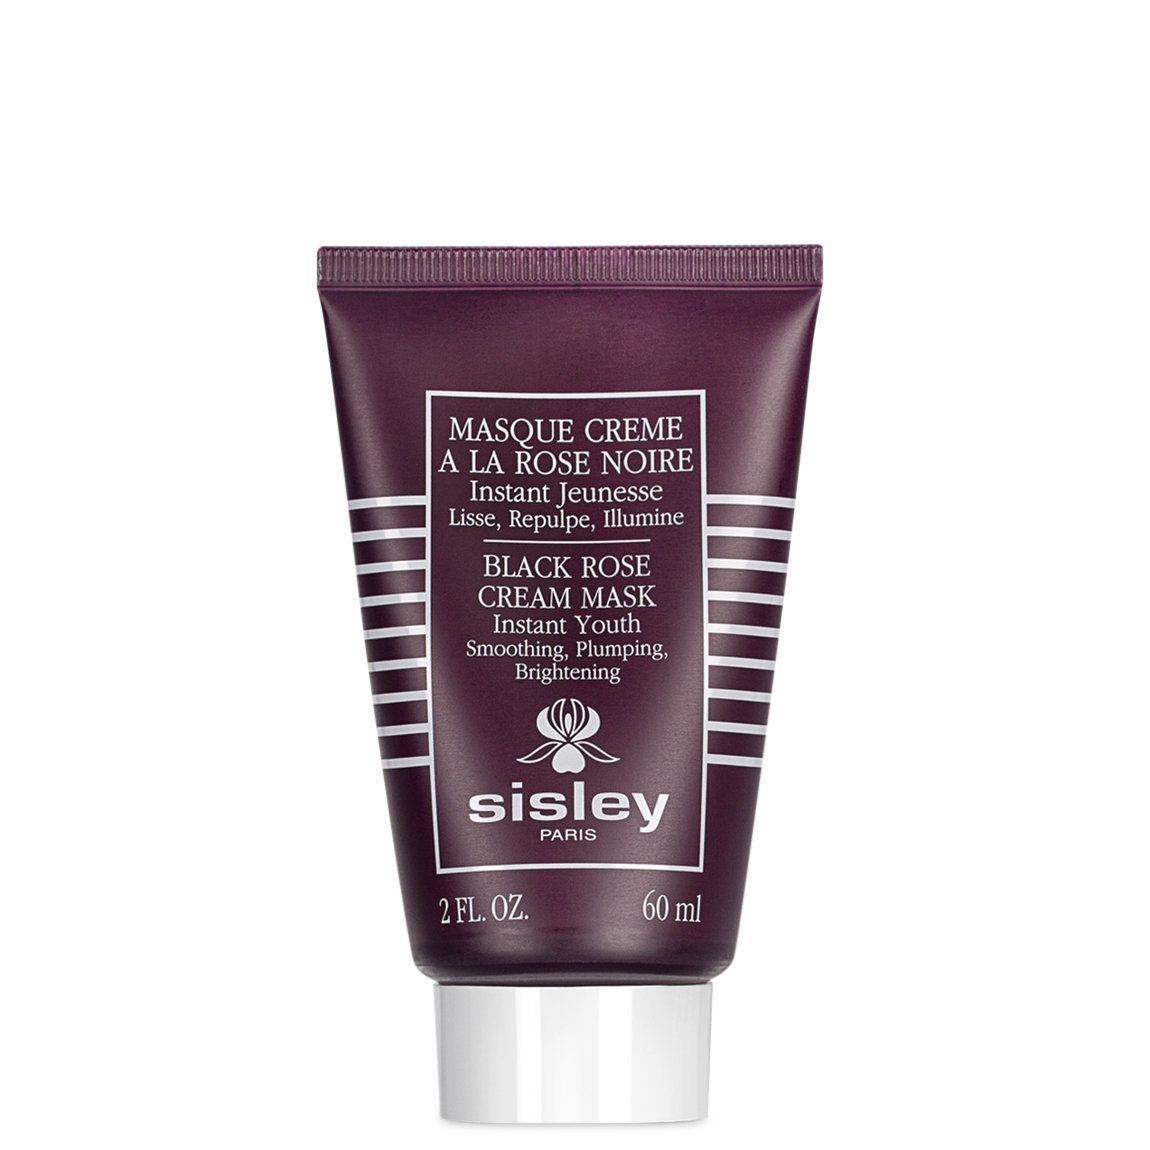 Sisley-Paris Black Rose Cream Mask alternative view 1 - product swatch.